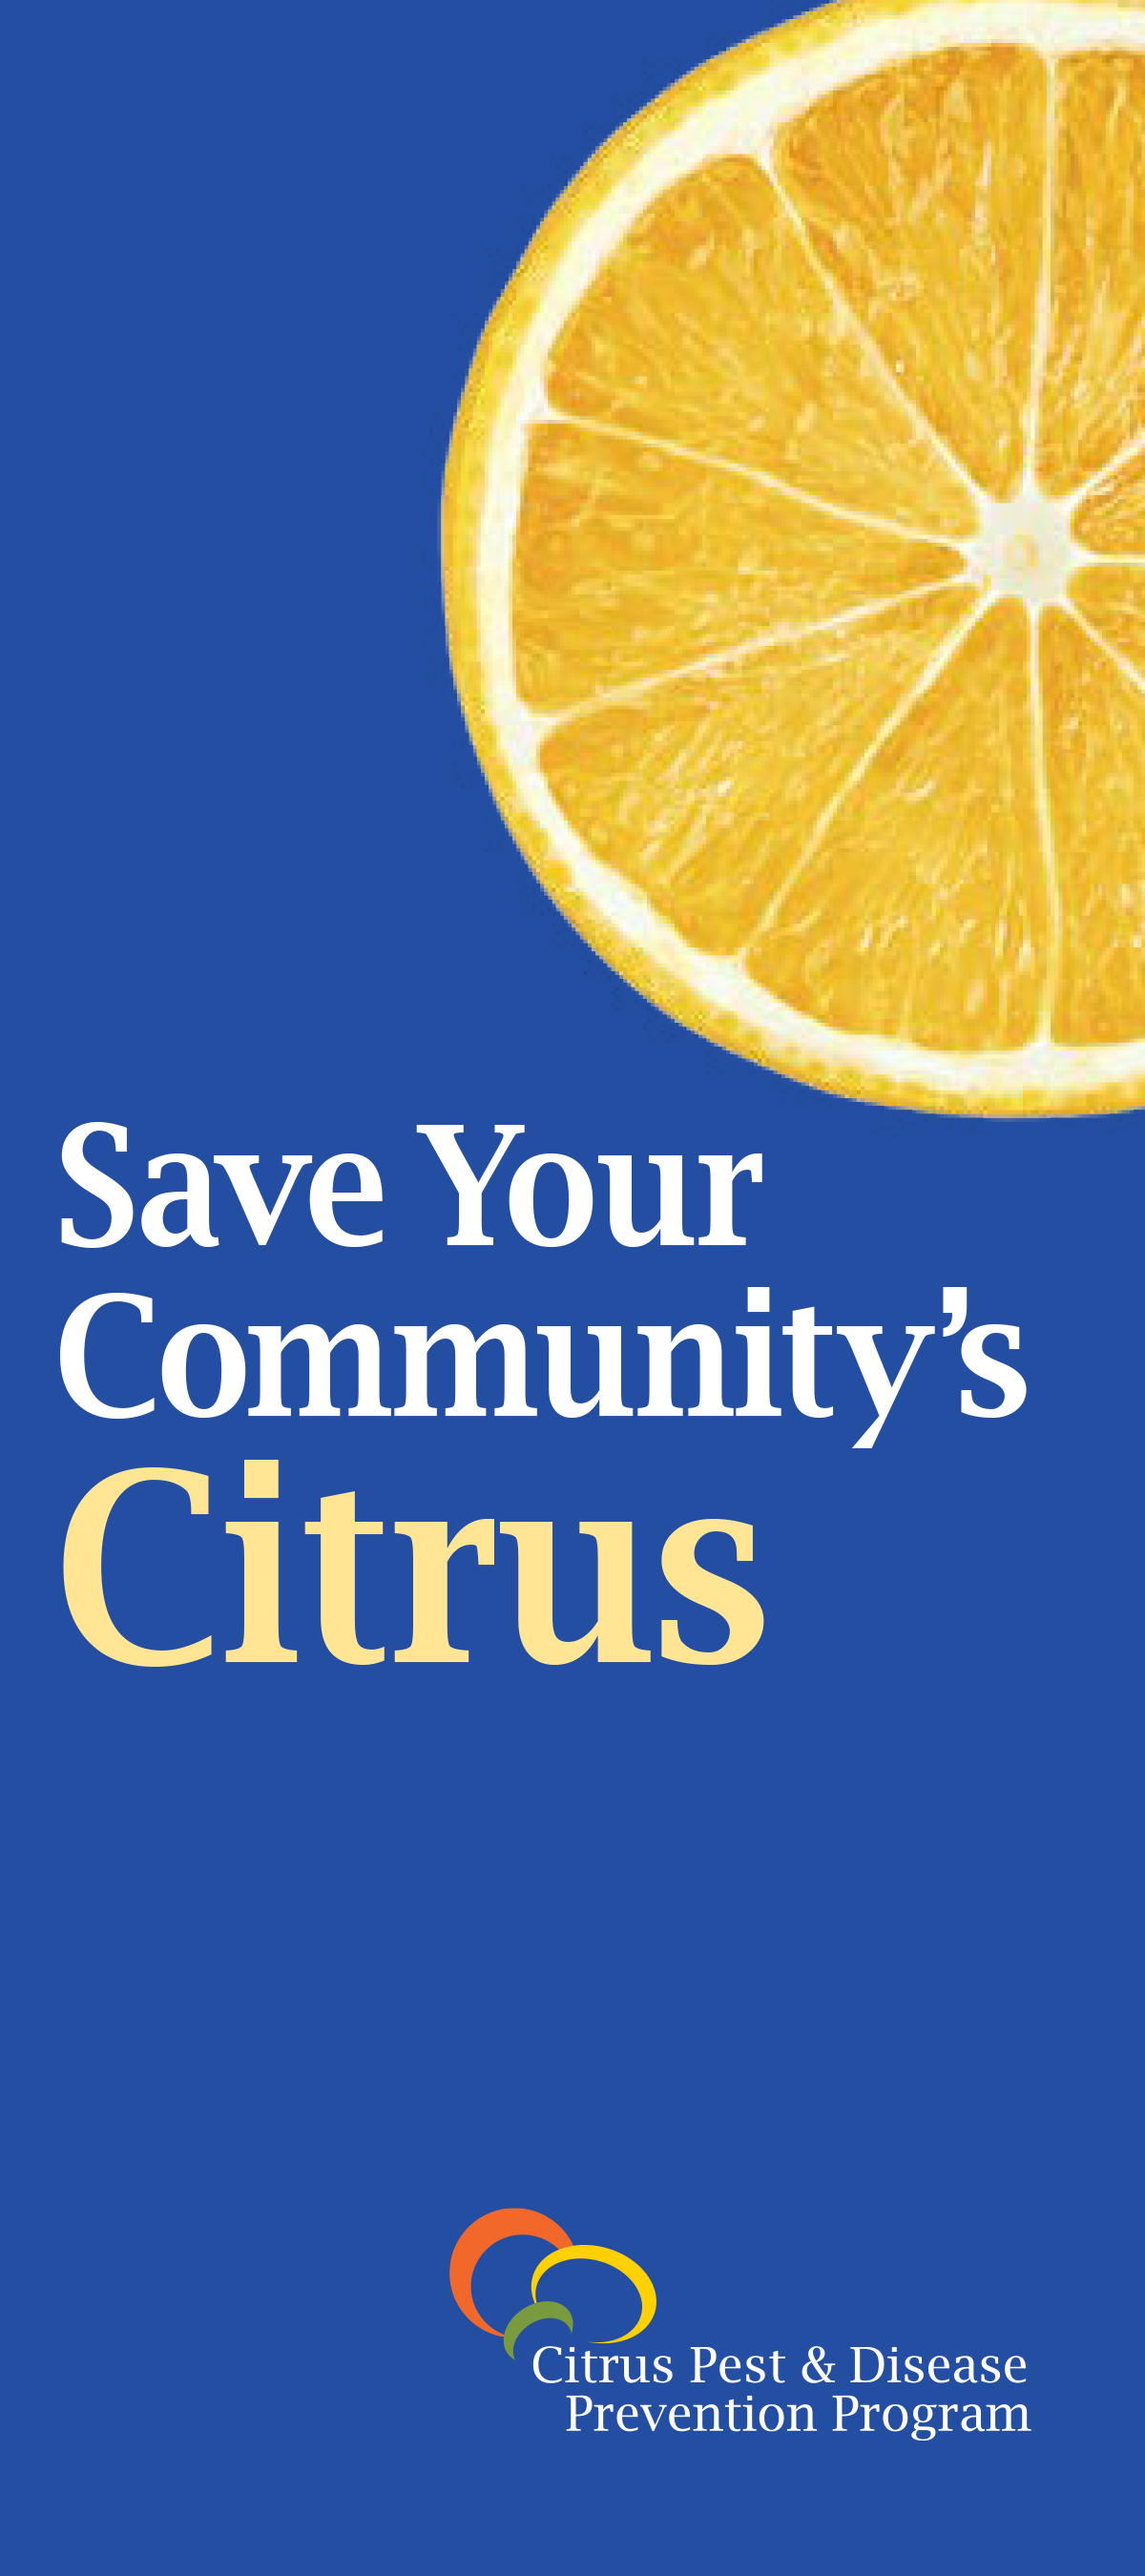 citrus brochure in English